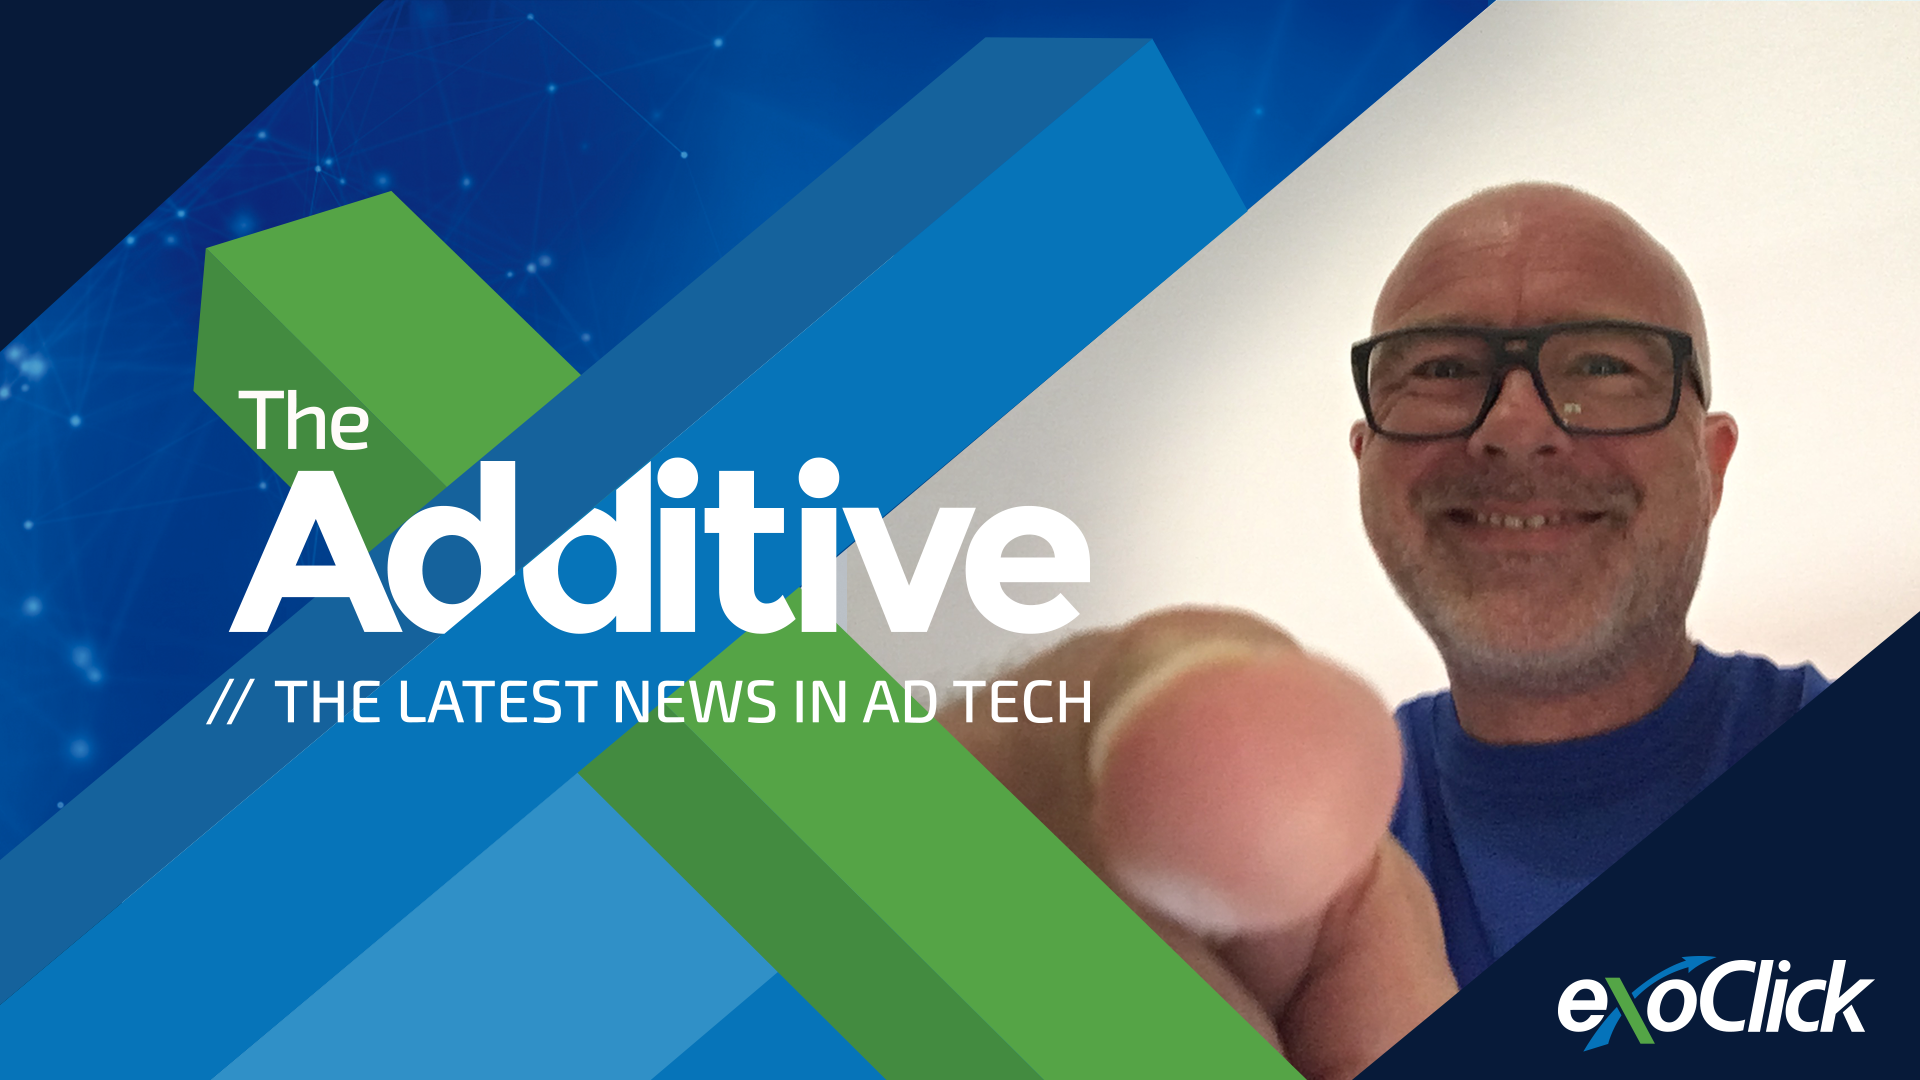 The Additive September/October 2020